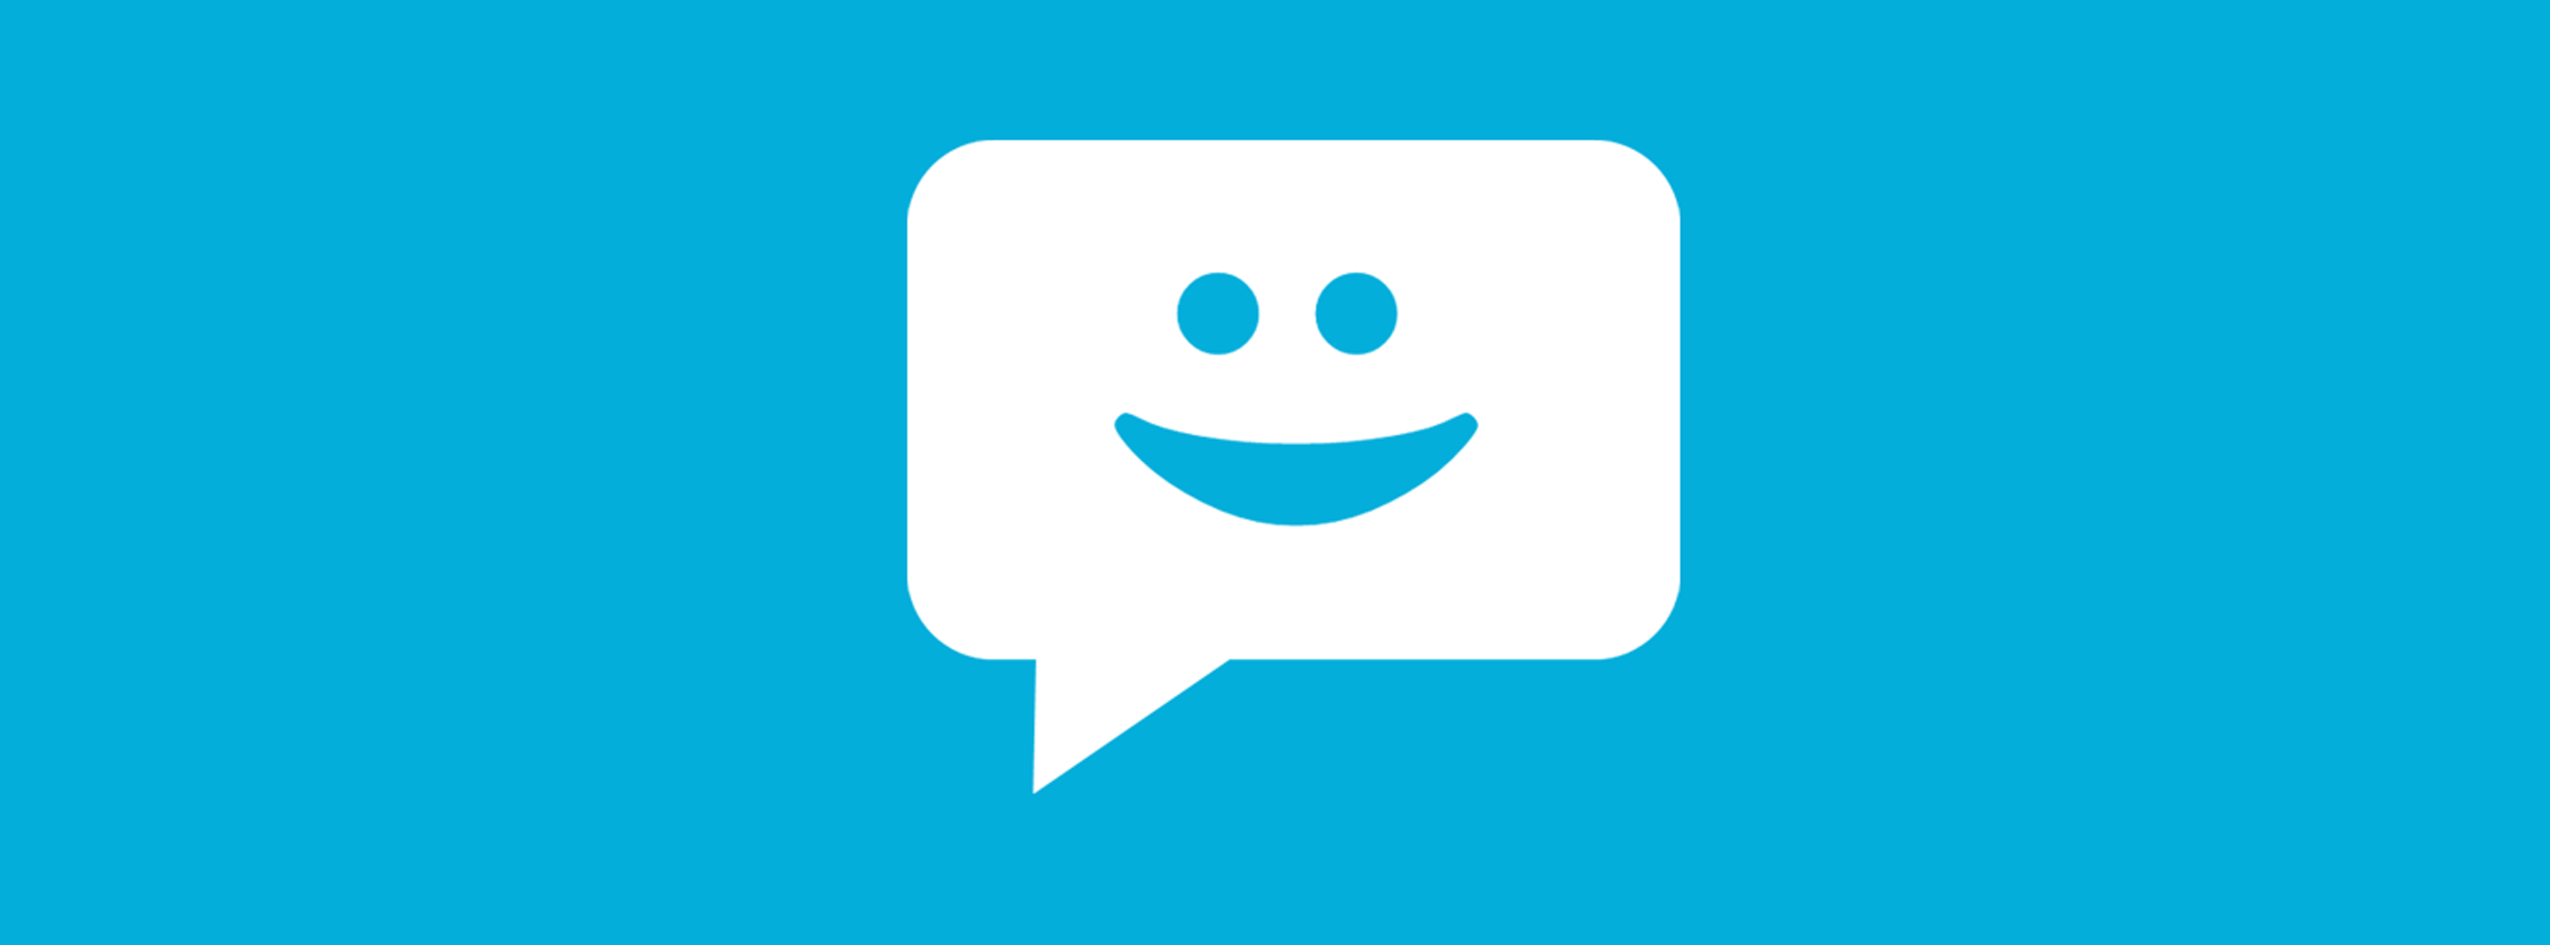 chat messaging icon with smile face